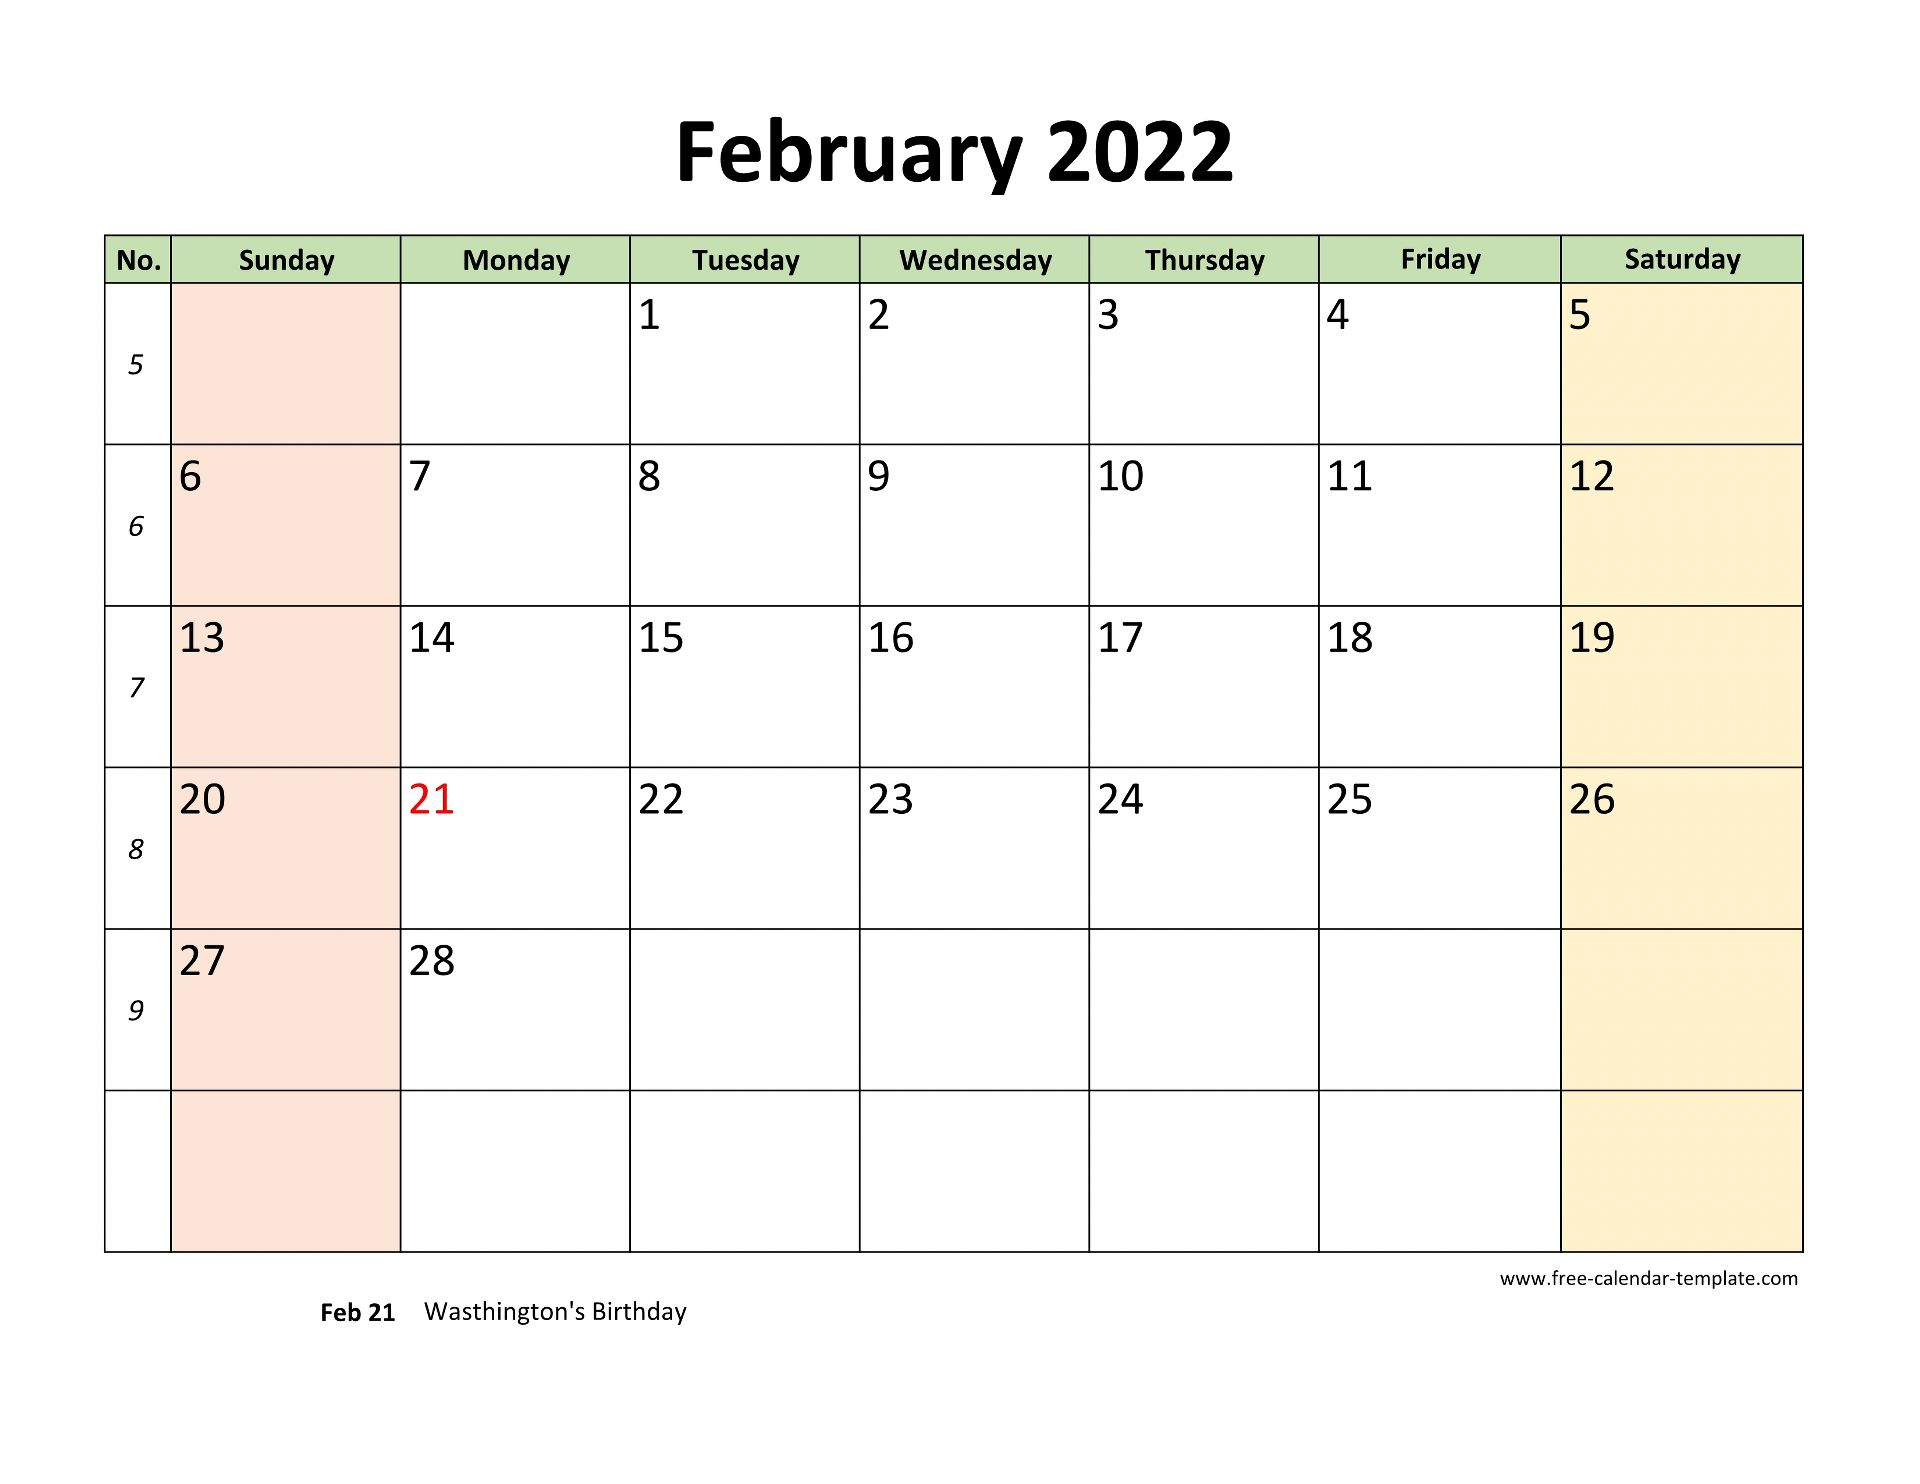 February 2022 Calendar Printable with coloring on weekend ...